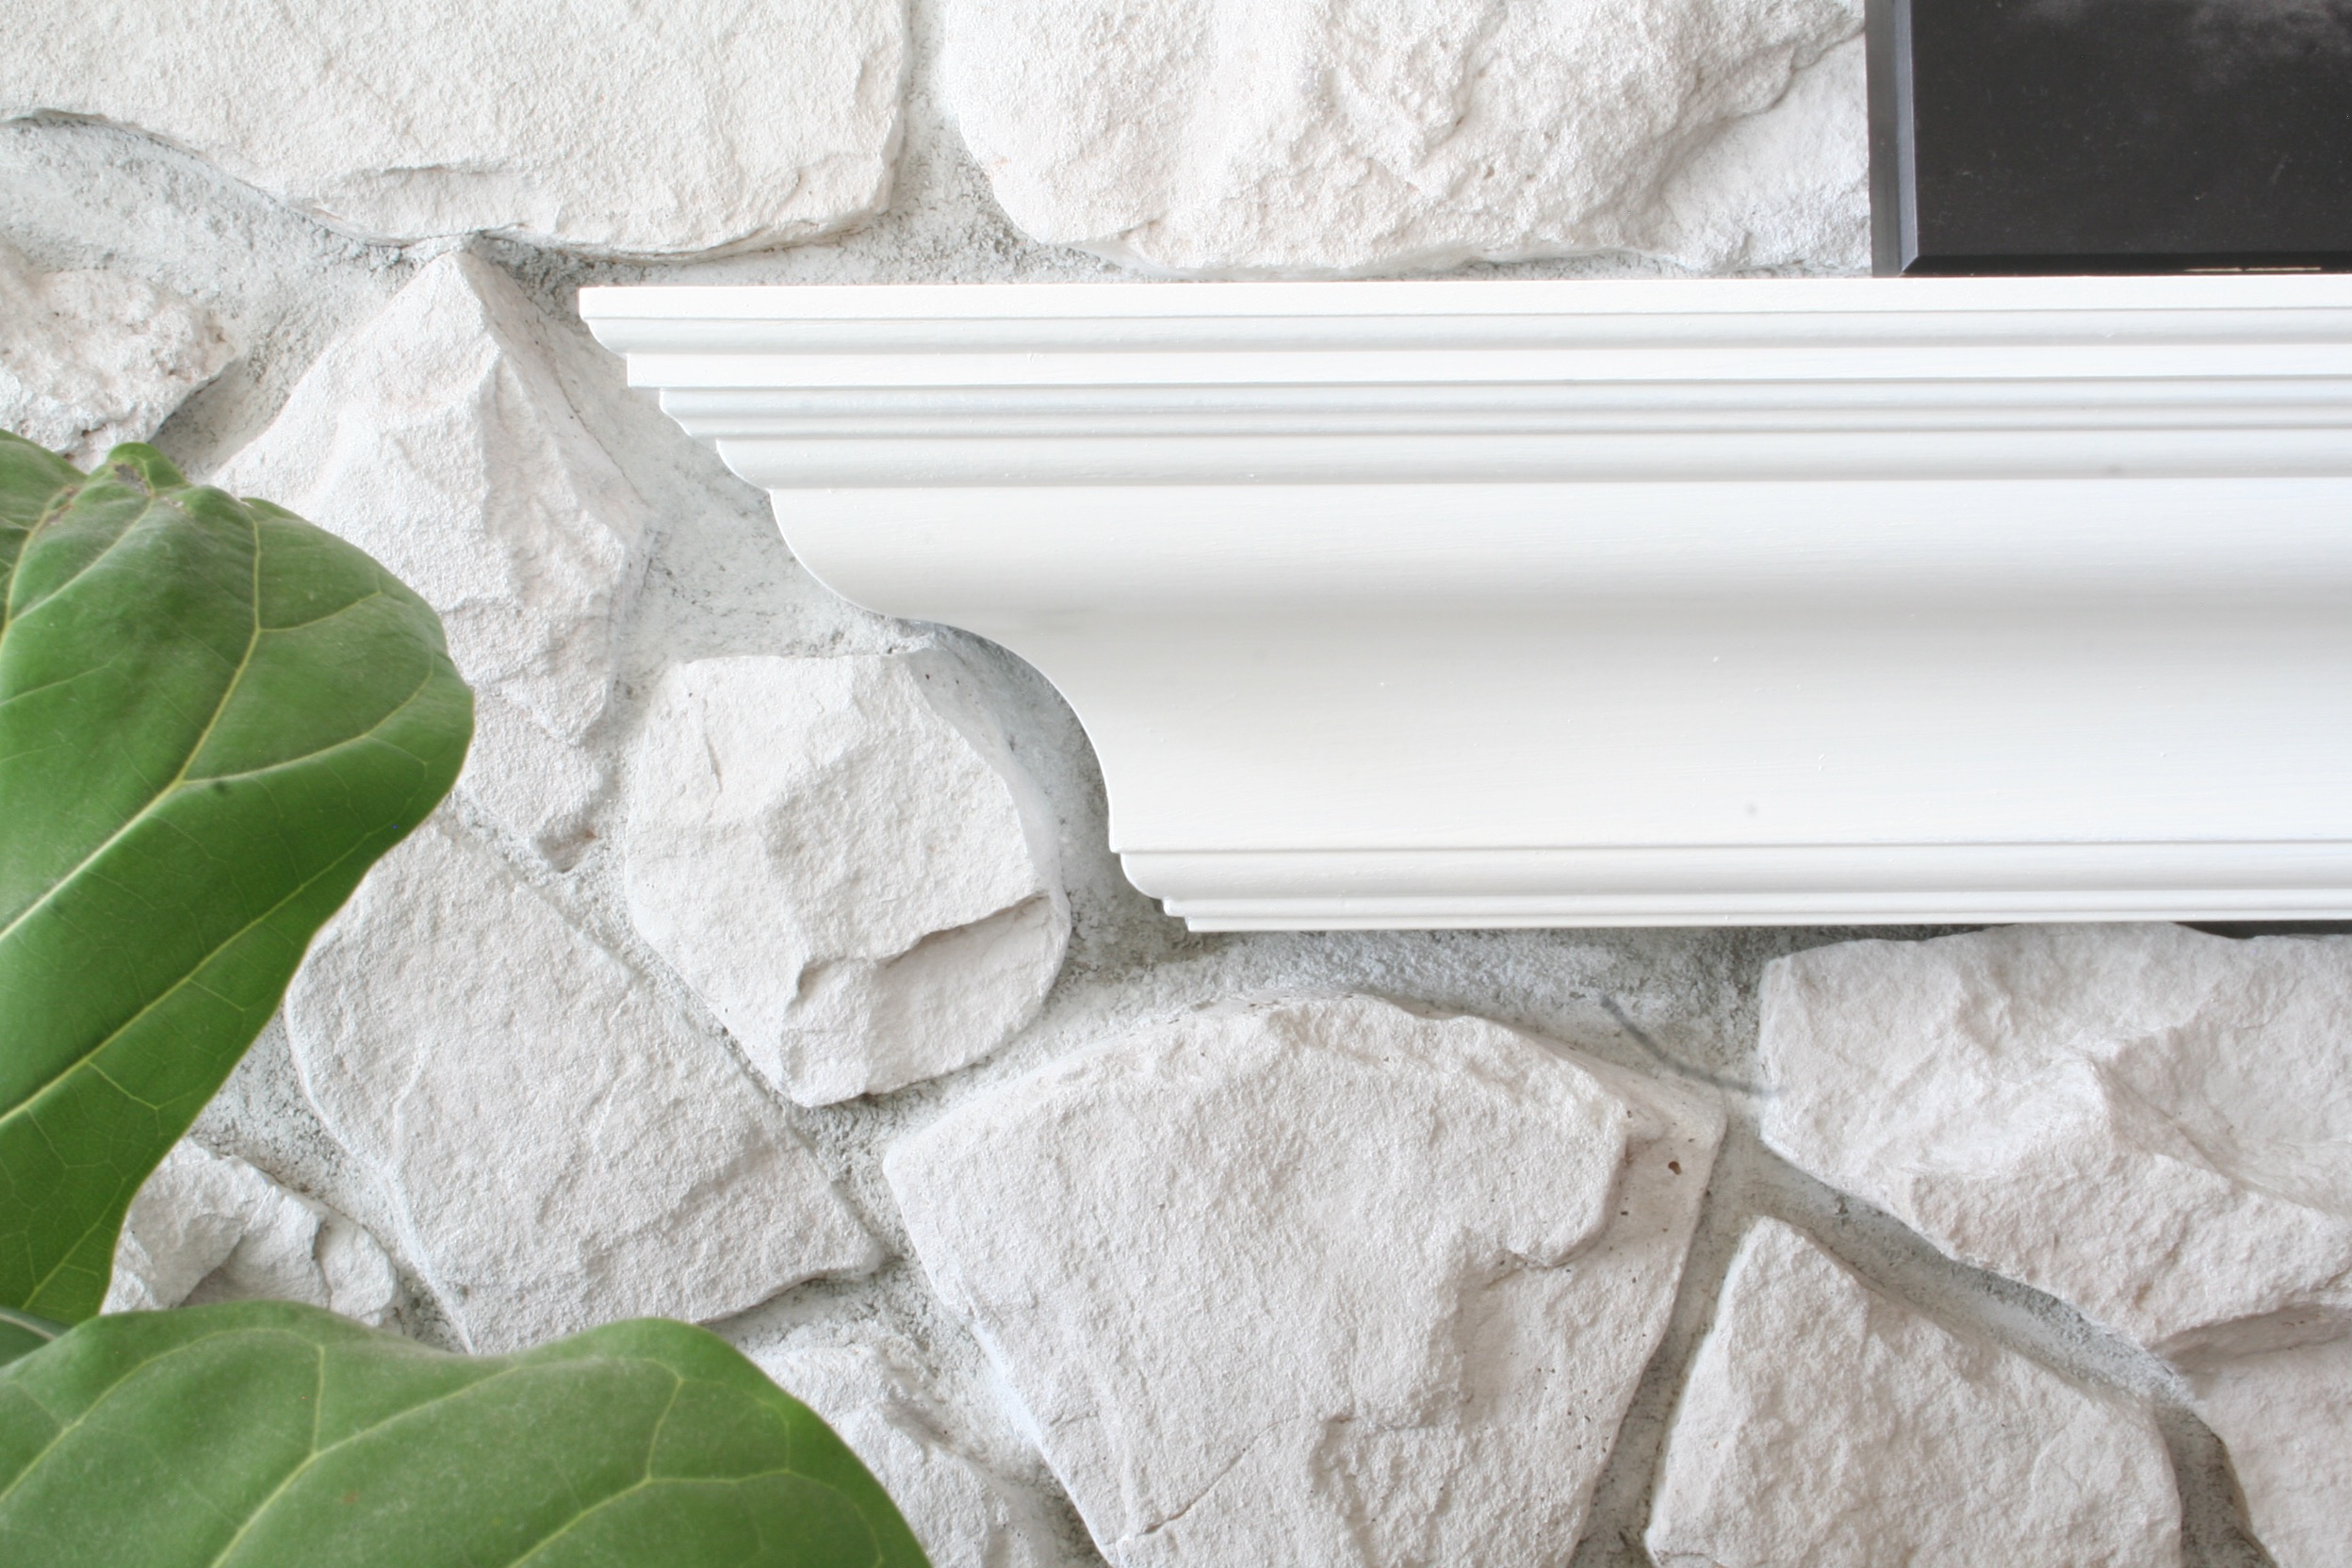 How to whitewash stone - DIY fireplace makeover